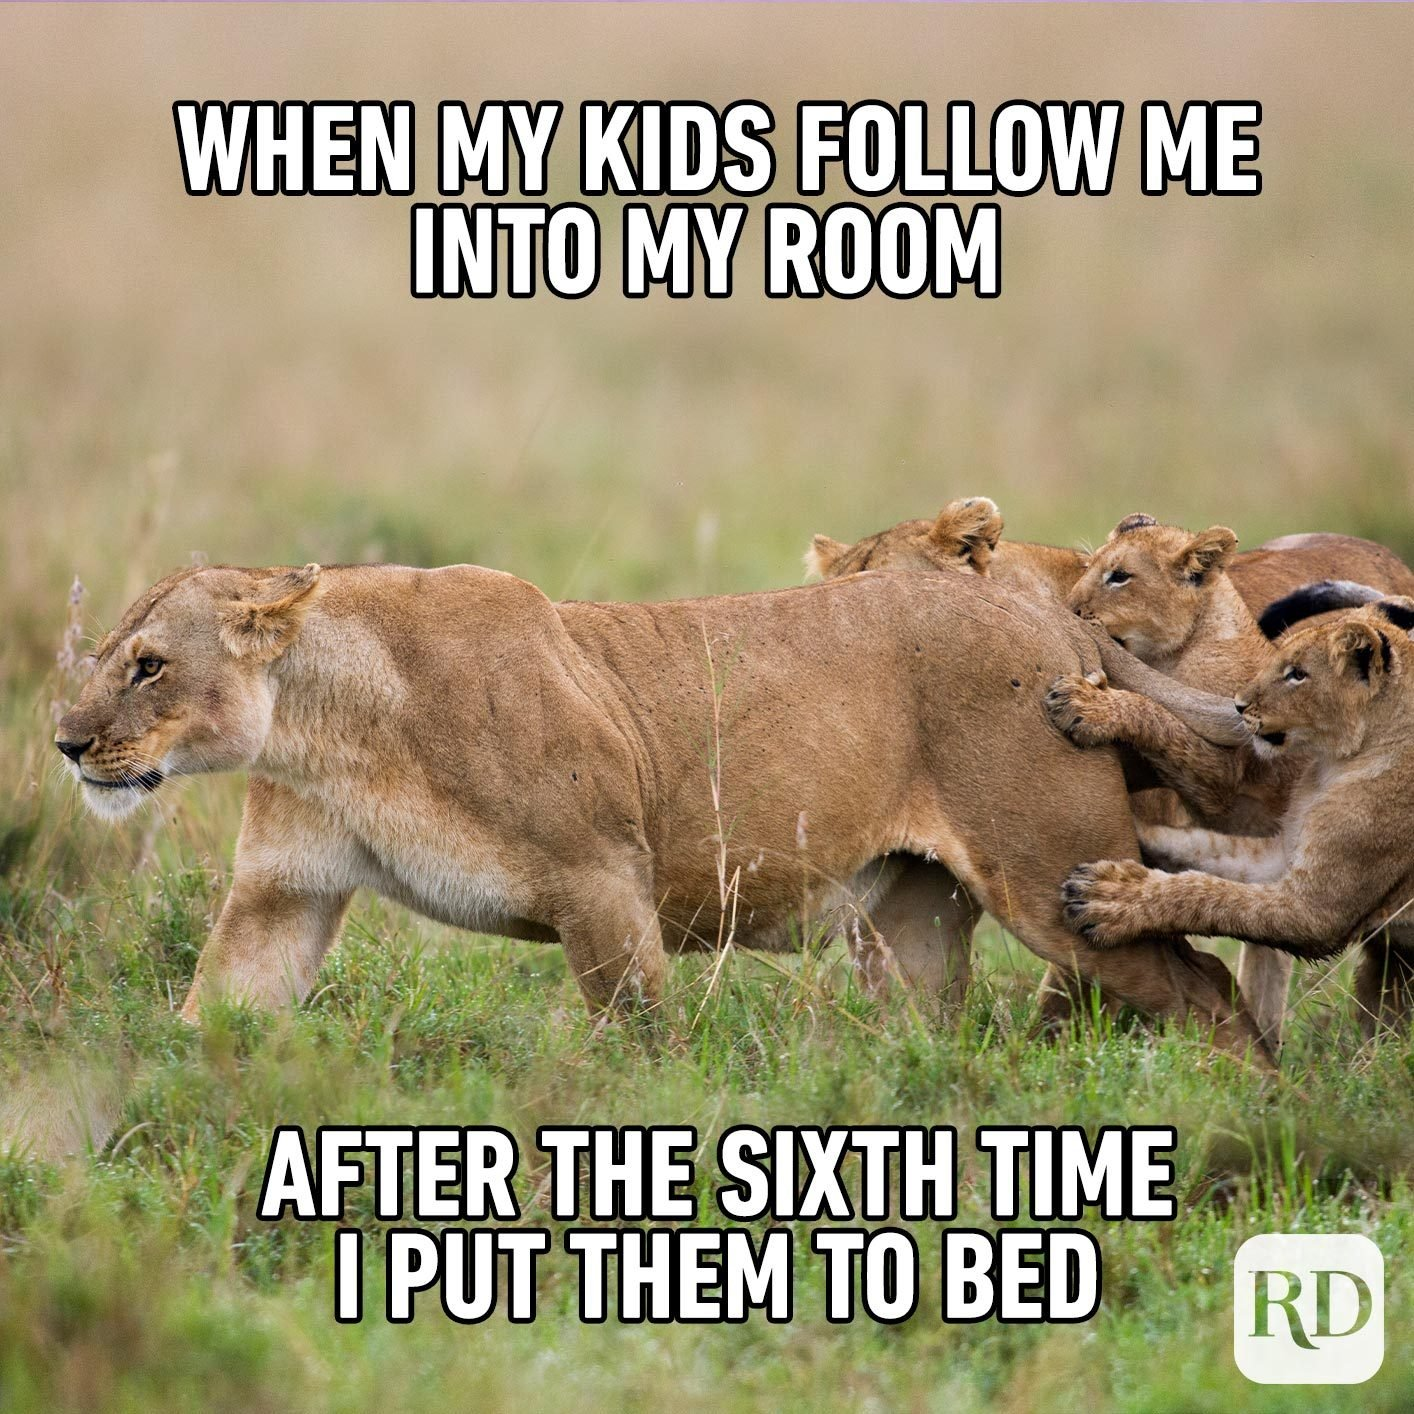 Lion being attacked by her cubs. MEME TEXT: When my kids follow me into my room after the sixth time I put them to bed